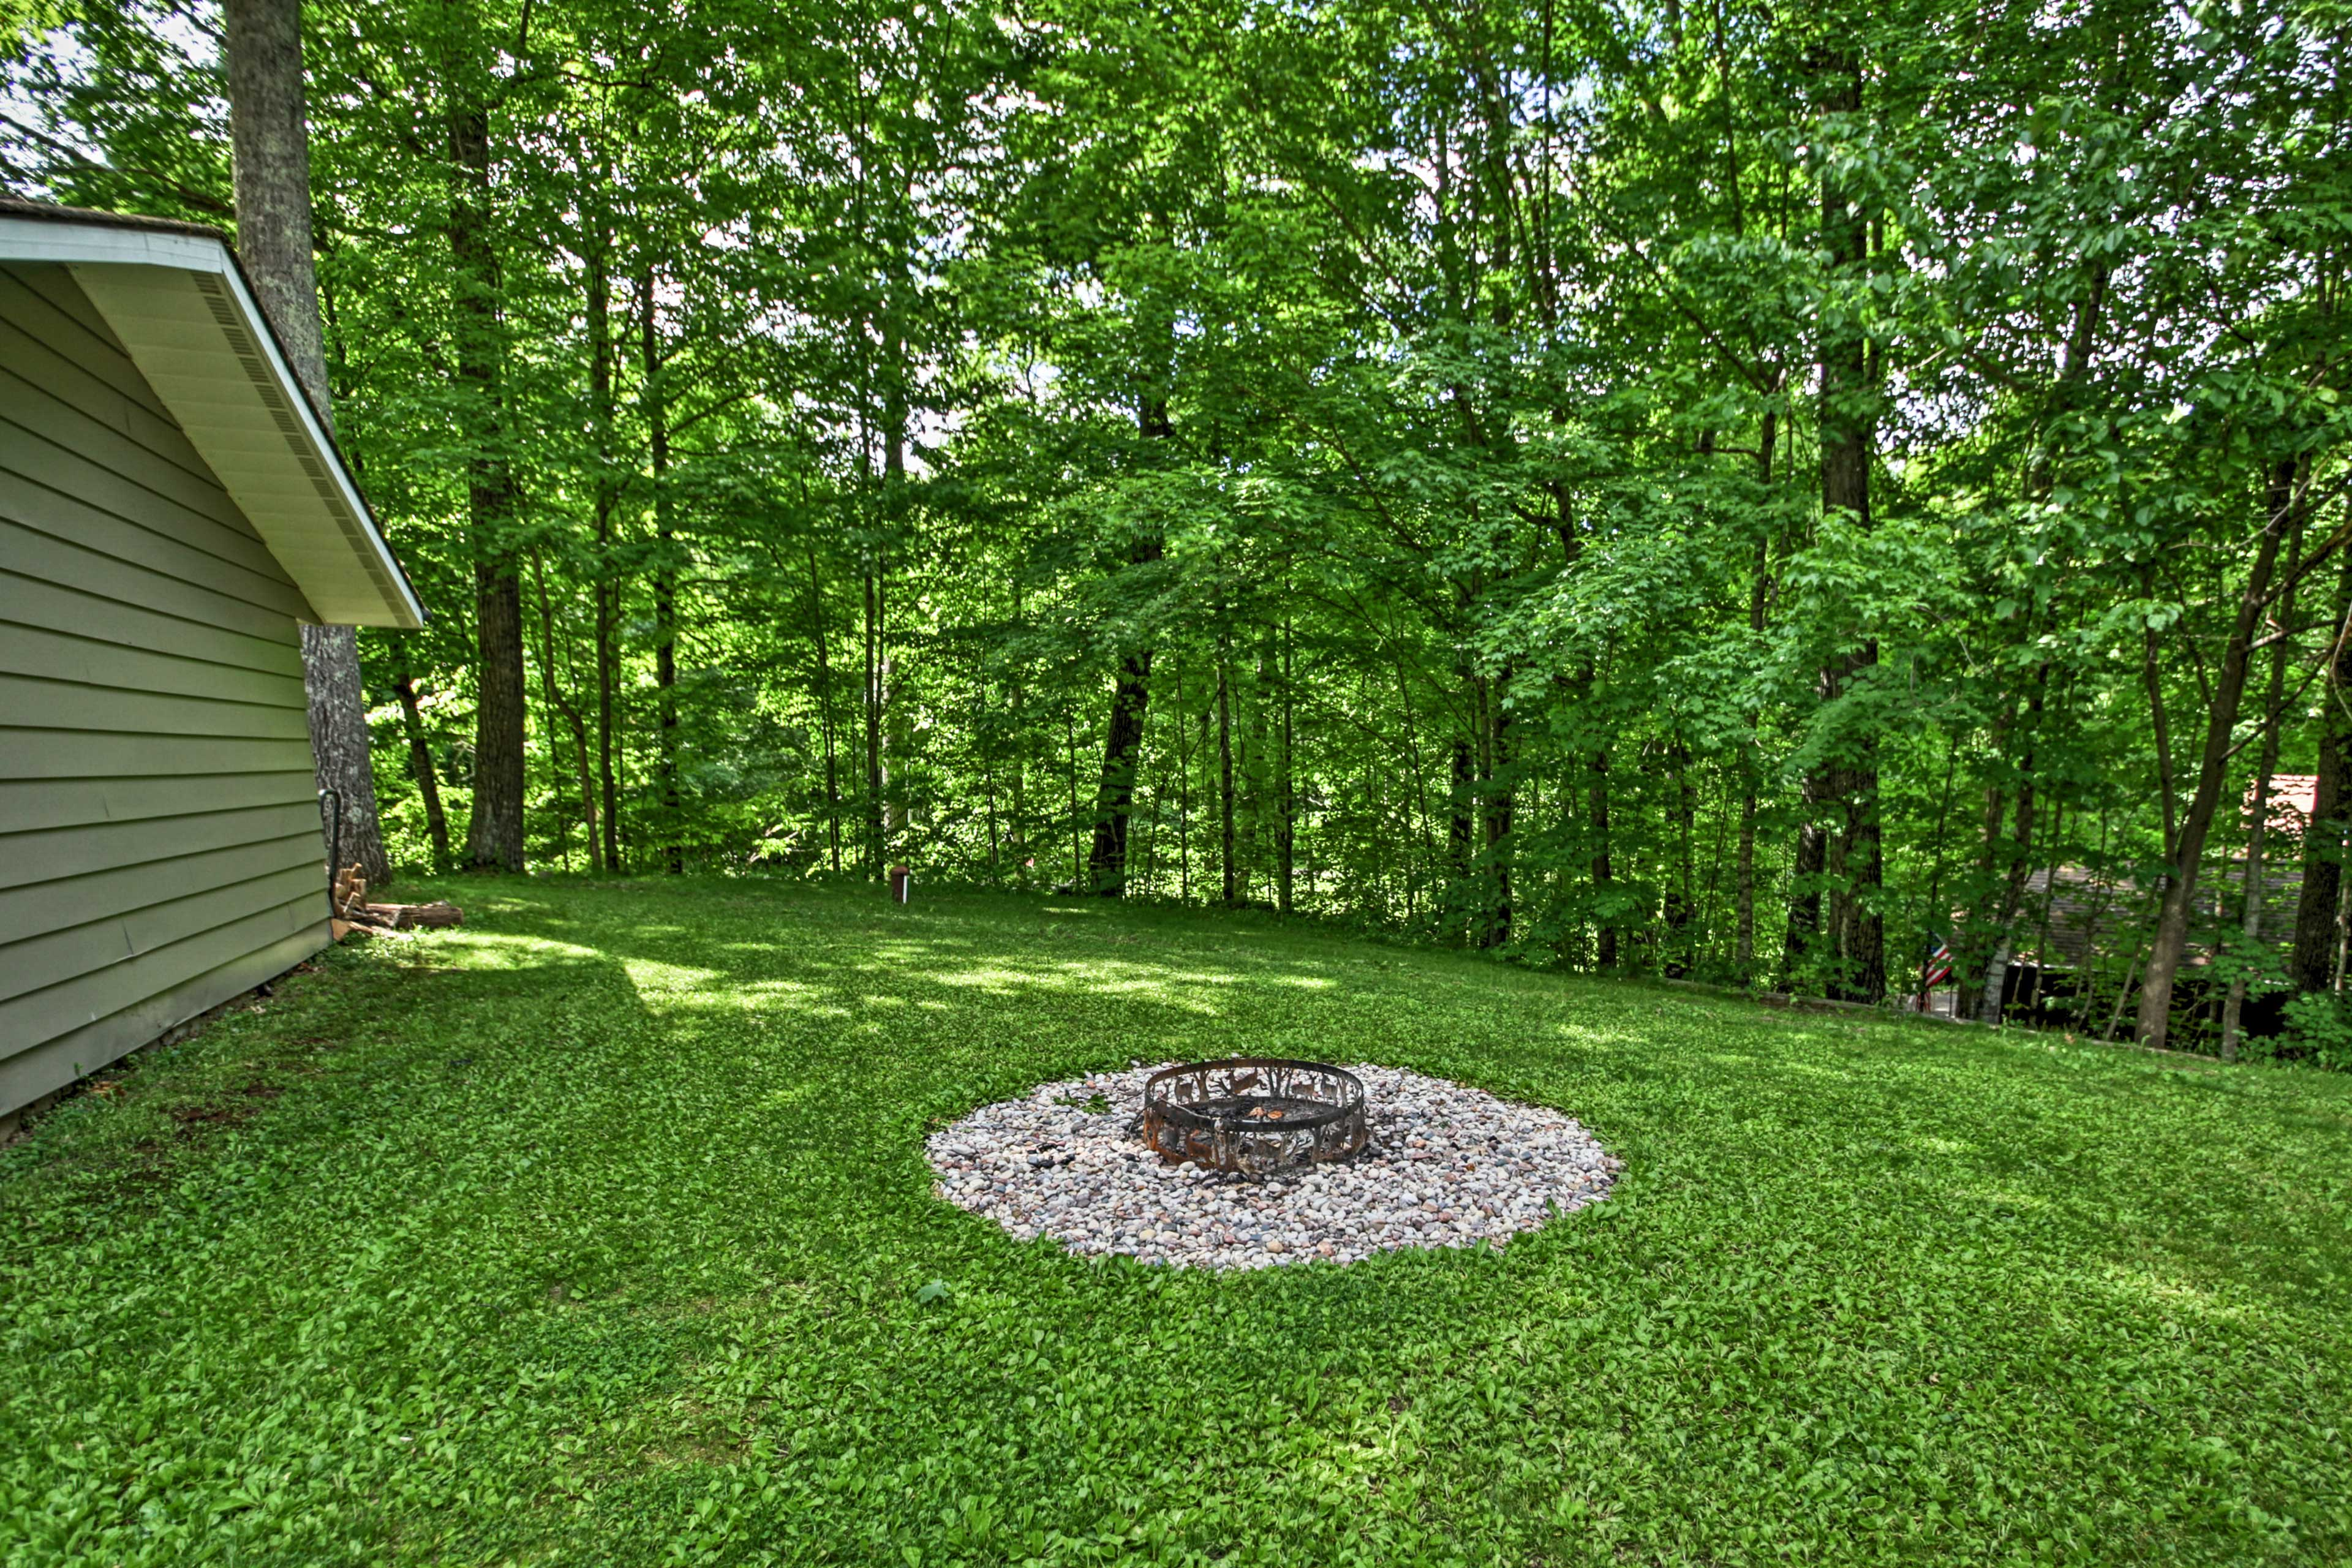 In the warmer months, you can share stories around the shared fire pit.